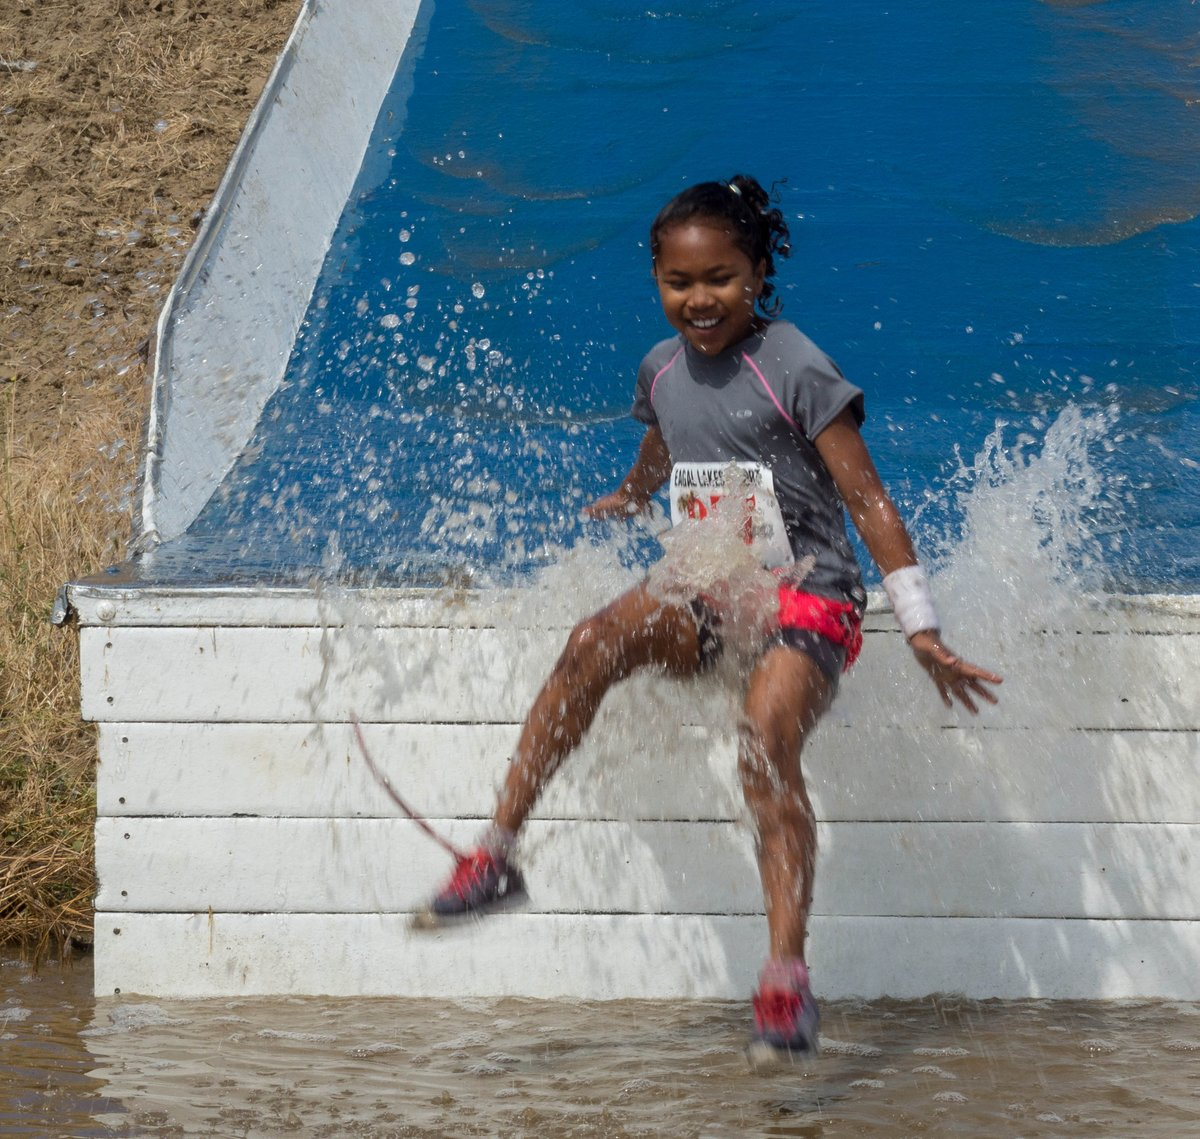 Get on the fast track with a VIP Family 4 Pack. Sign-up now. Sat May 9th. #lilmudrunner #fun #family #kids #running #familytime #run #runner #familyfun #familygoals #familyday #runhappy #mudrun #eagallakesresort #eagallakes #lakesintracy #tracyca - https://mailchi.mp/eagallakes.com/lil-mud-runner-mudbath-2639233 …pic.twitter.com/GuJSr2iNB9